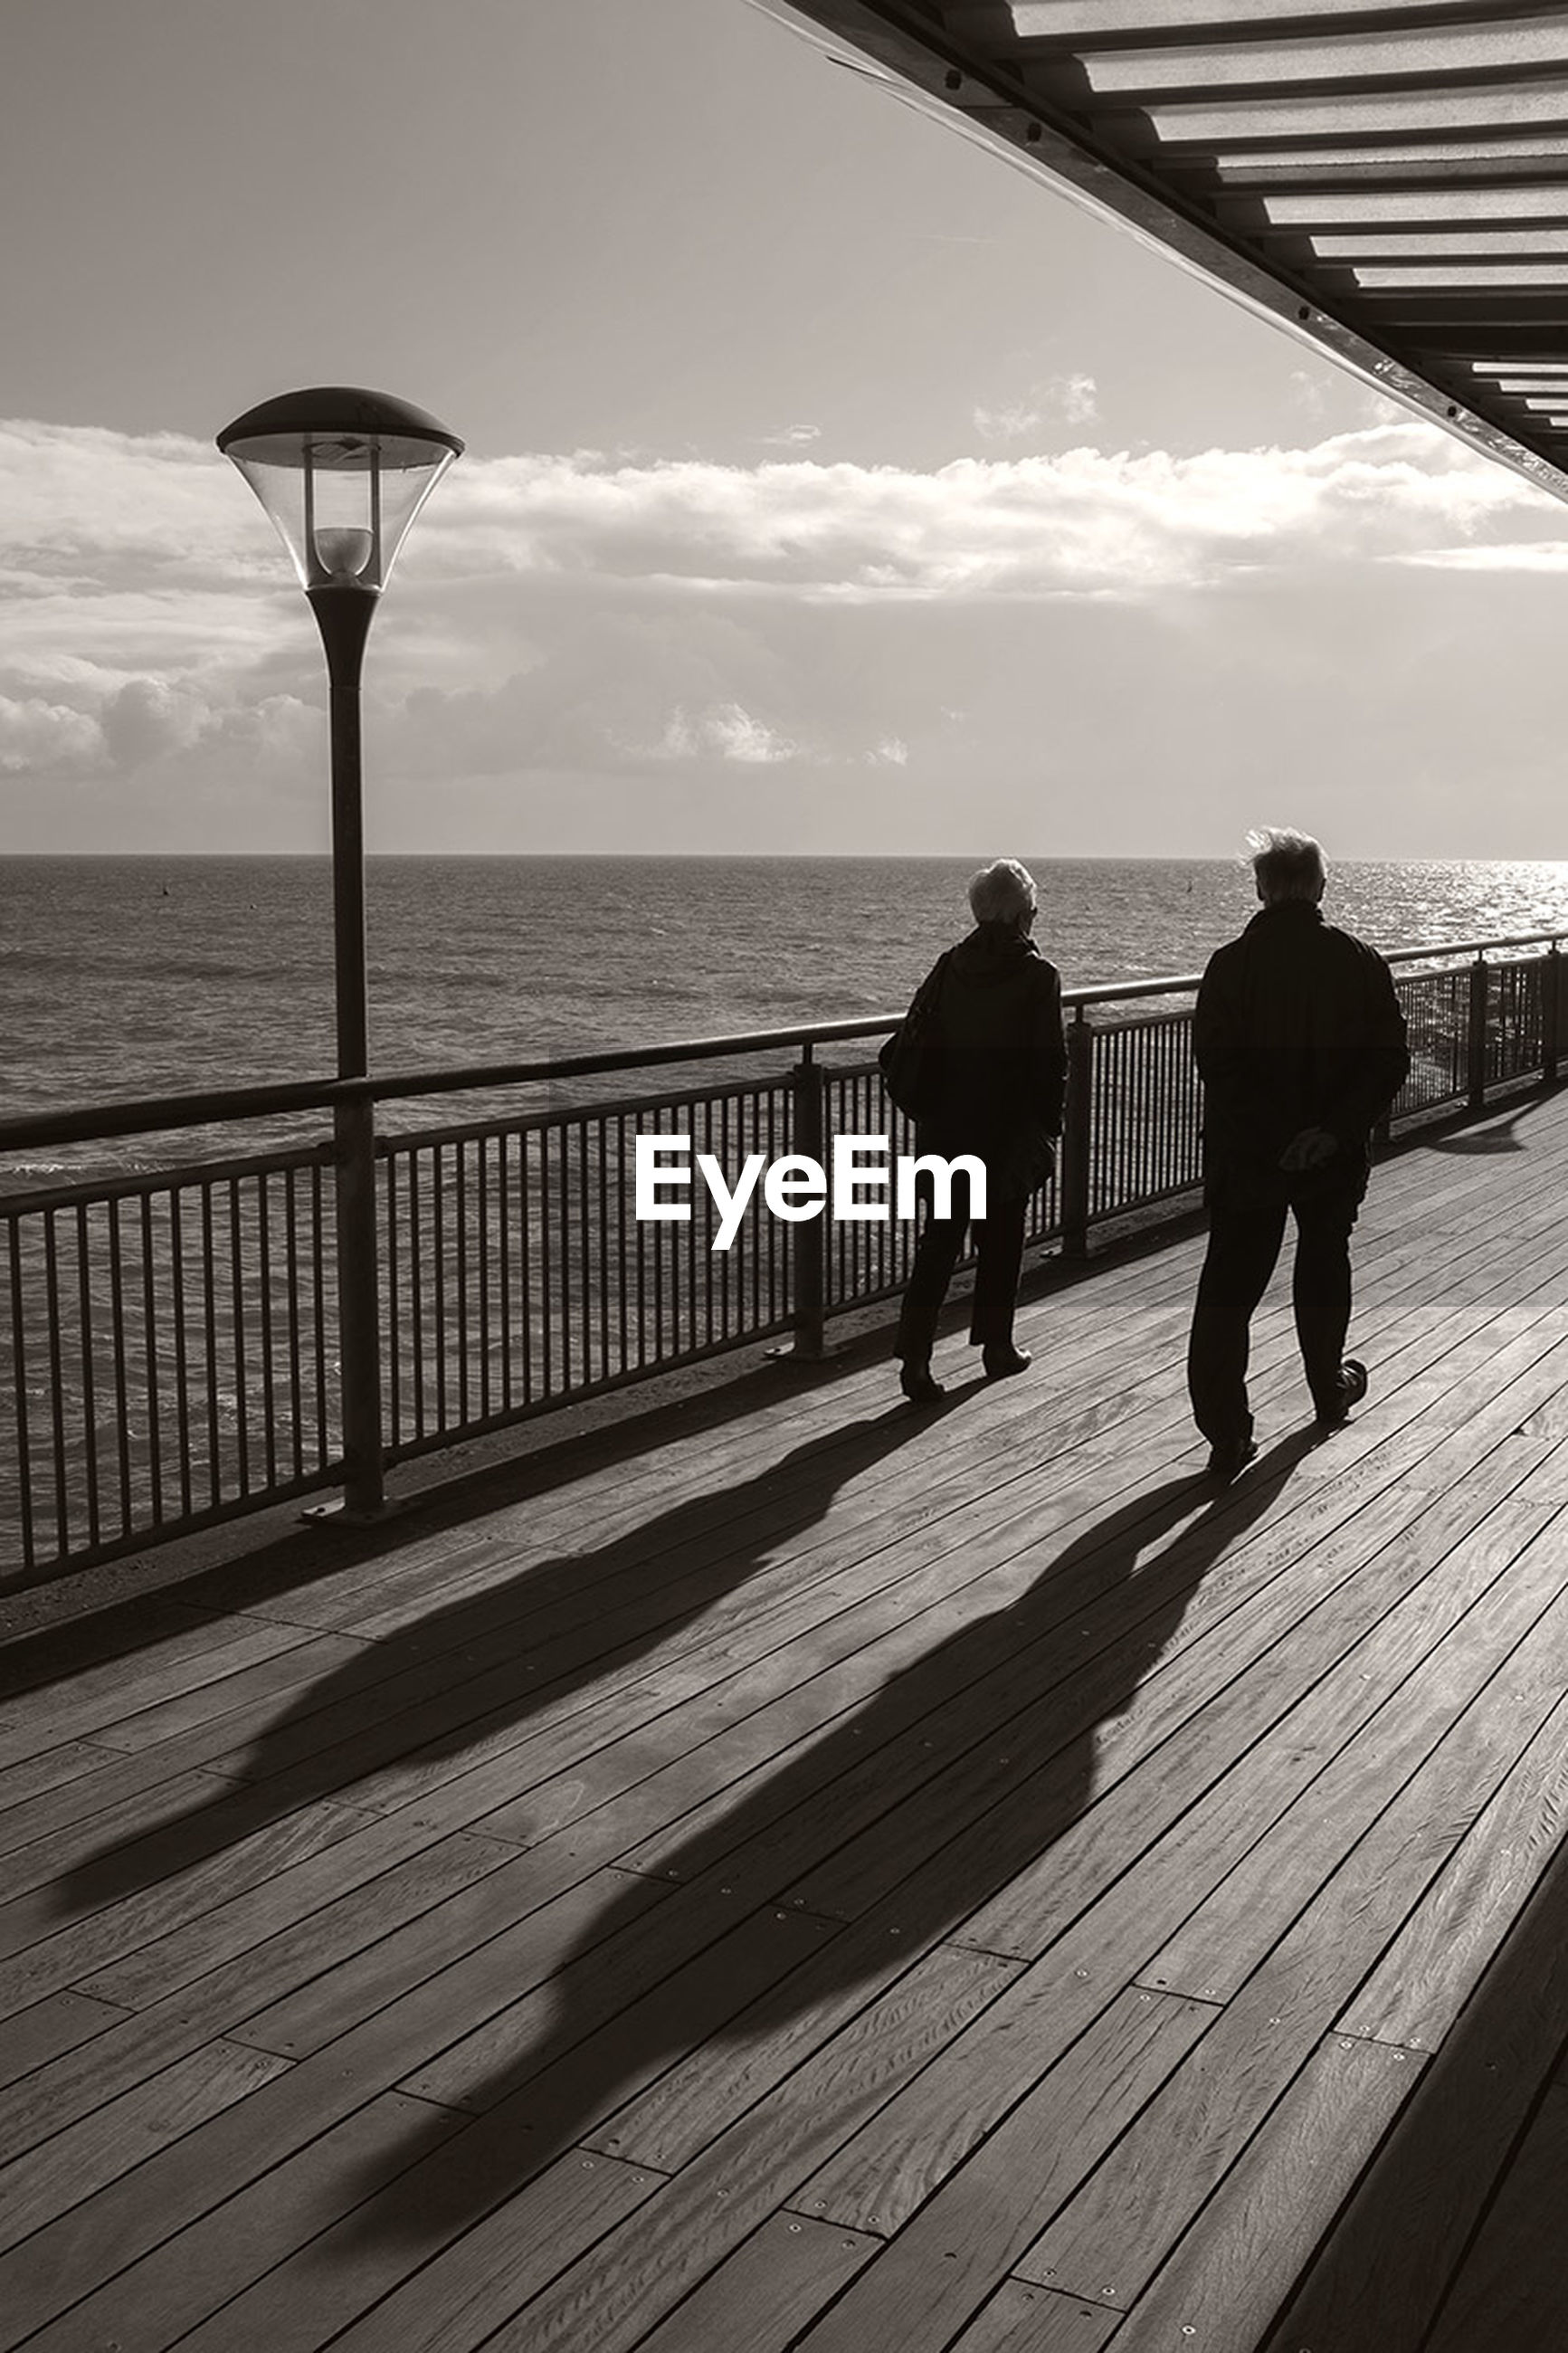 sea, horizon over water, water, sky, full length, railing, men, silhouette, walking, rear view, lifestyles, pier, leisure activity, person, beach, standing, nature